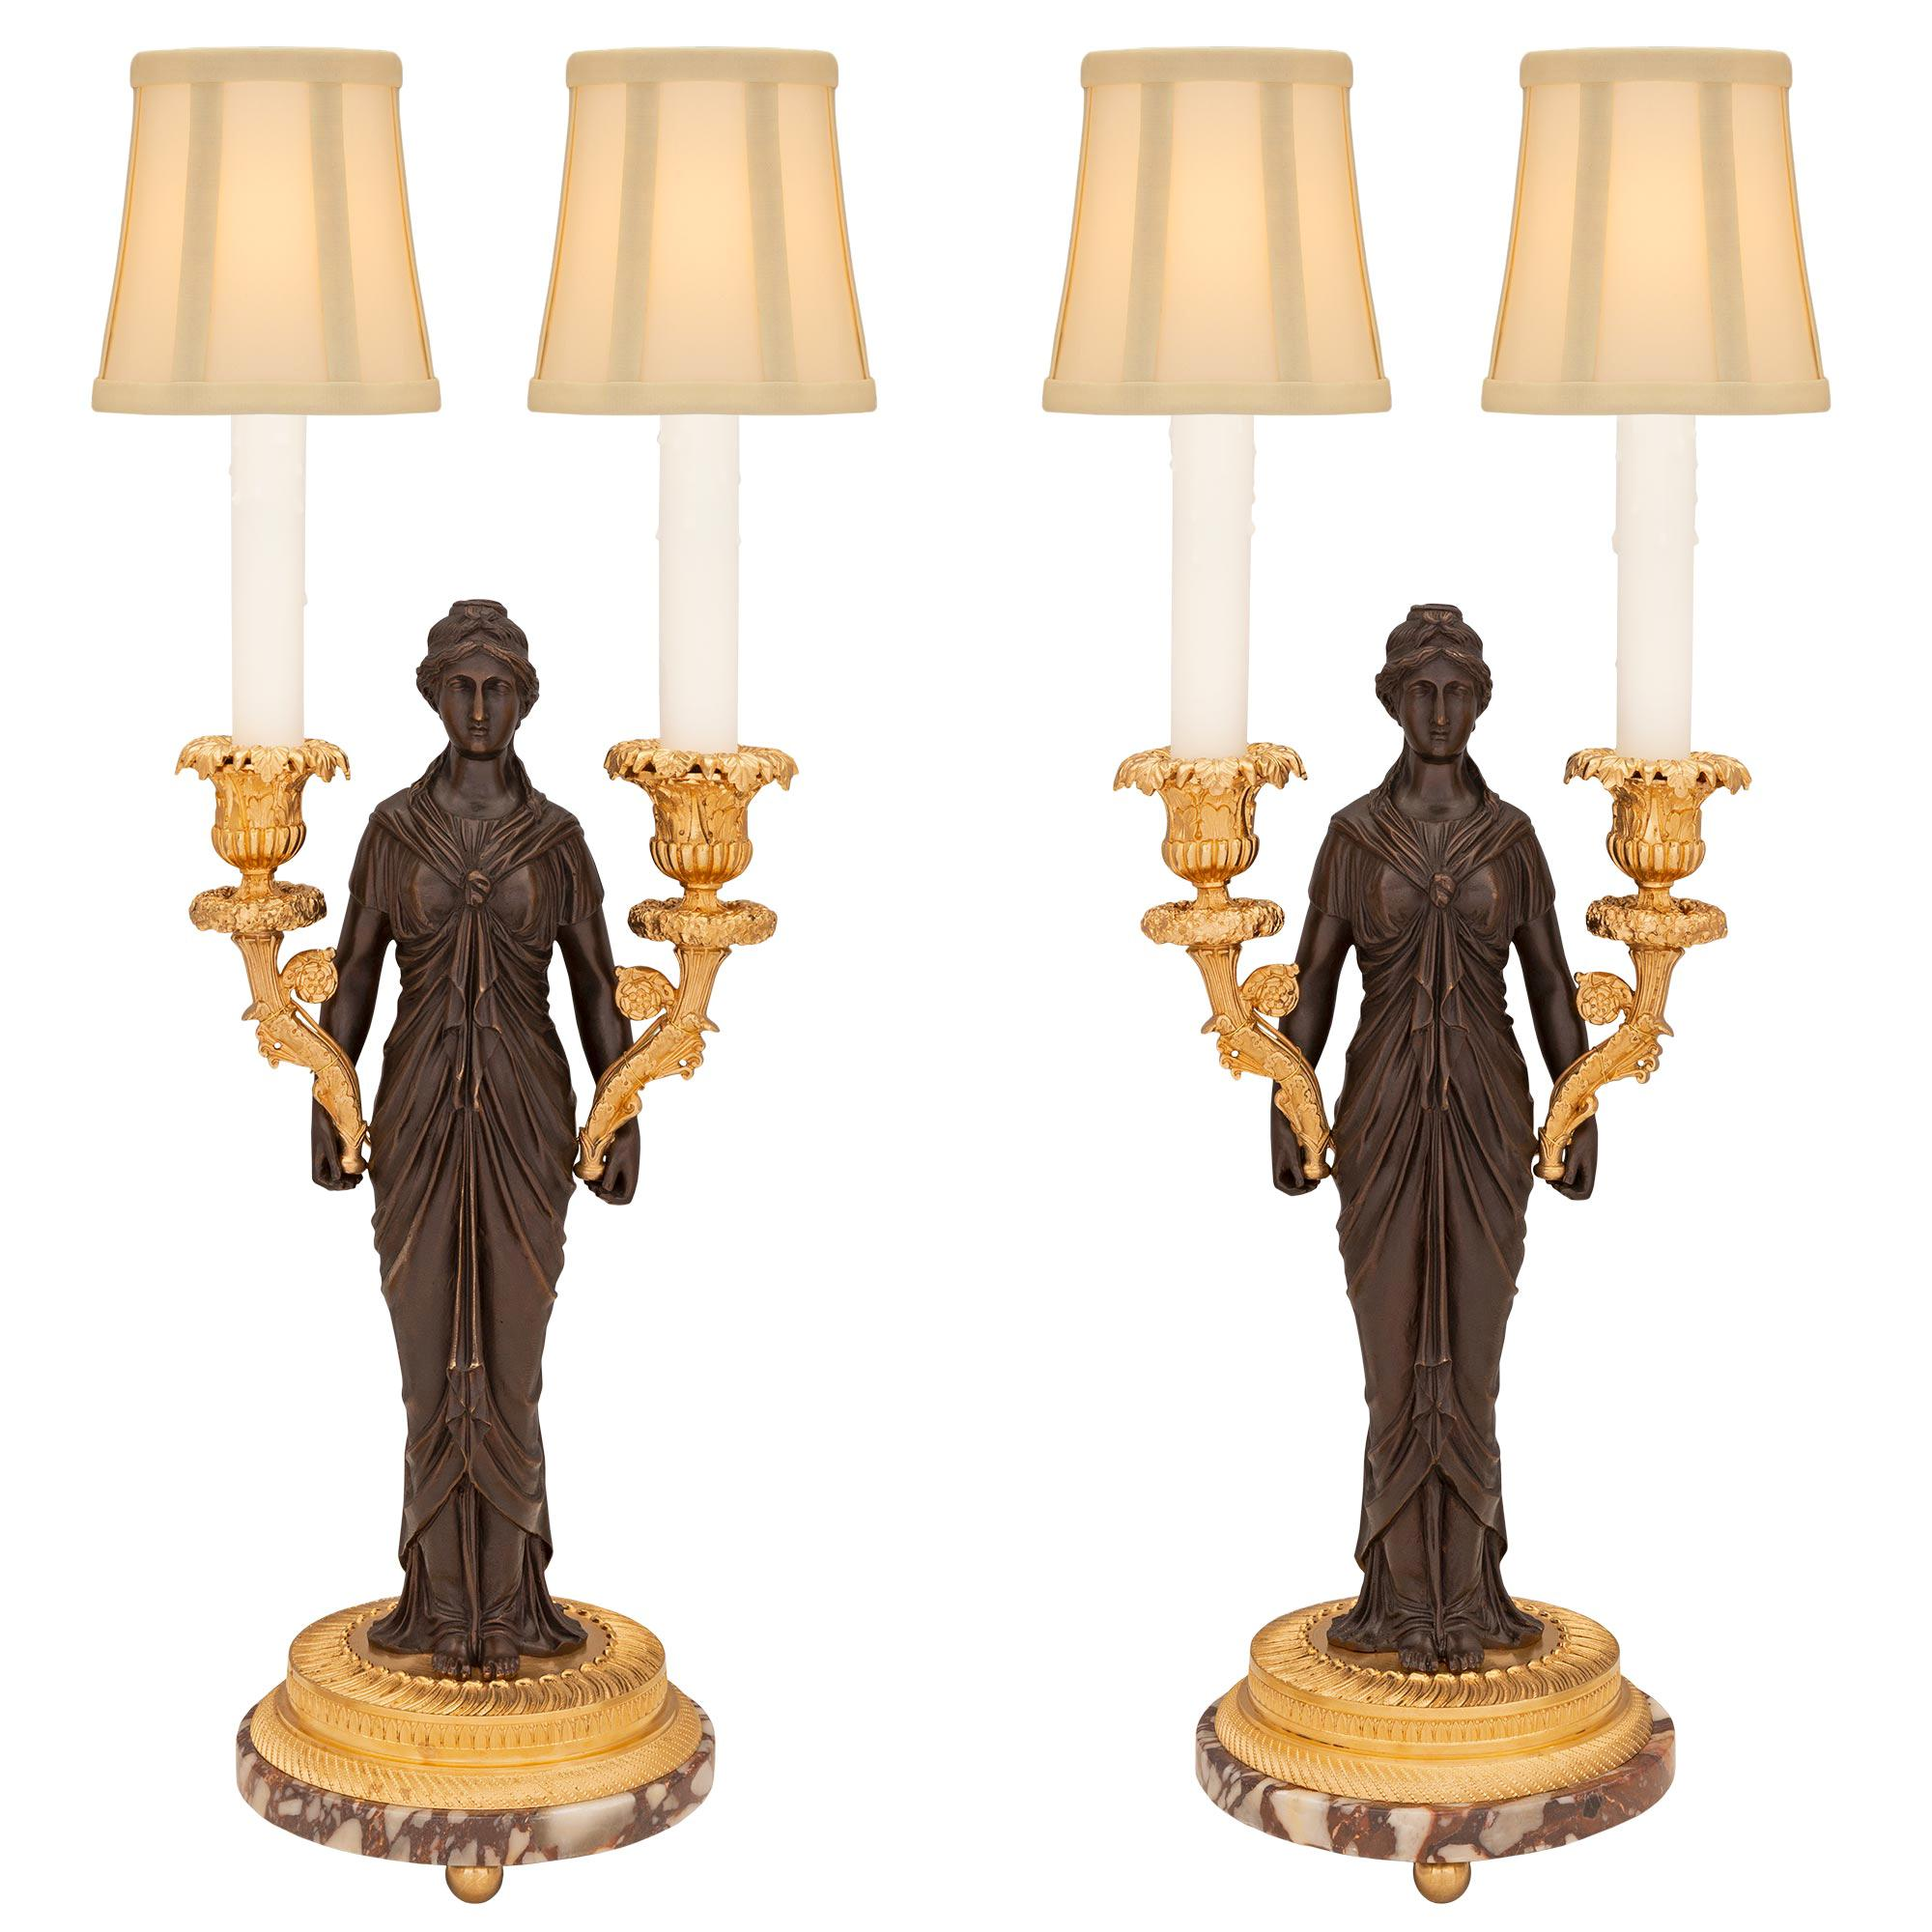 Pair of French 19th Century Neo-Classical St. Bronze, Ormolu, and Marble Lamps